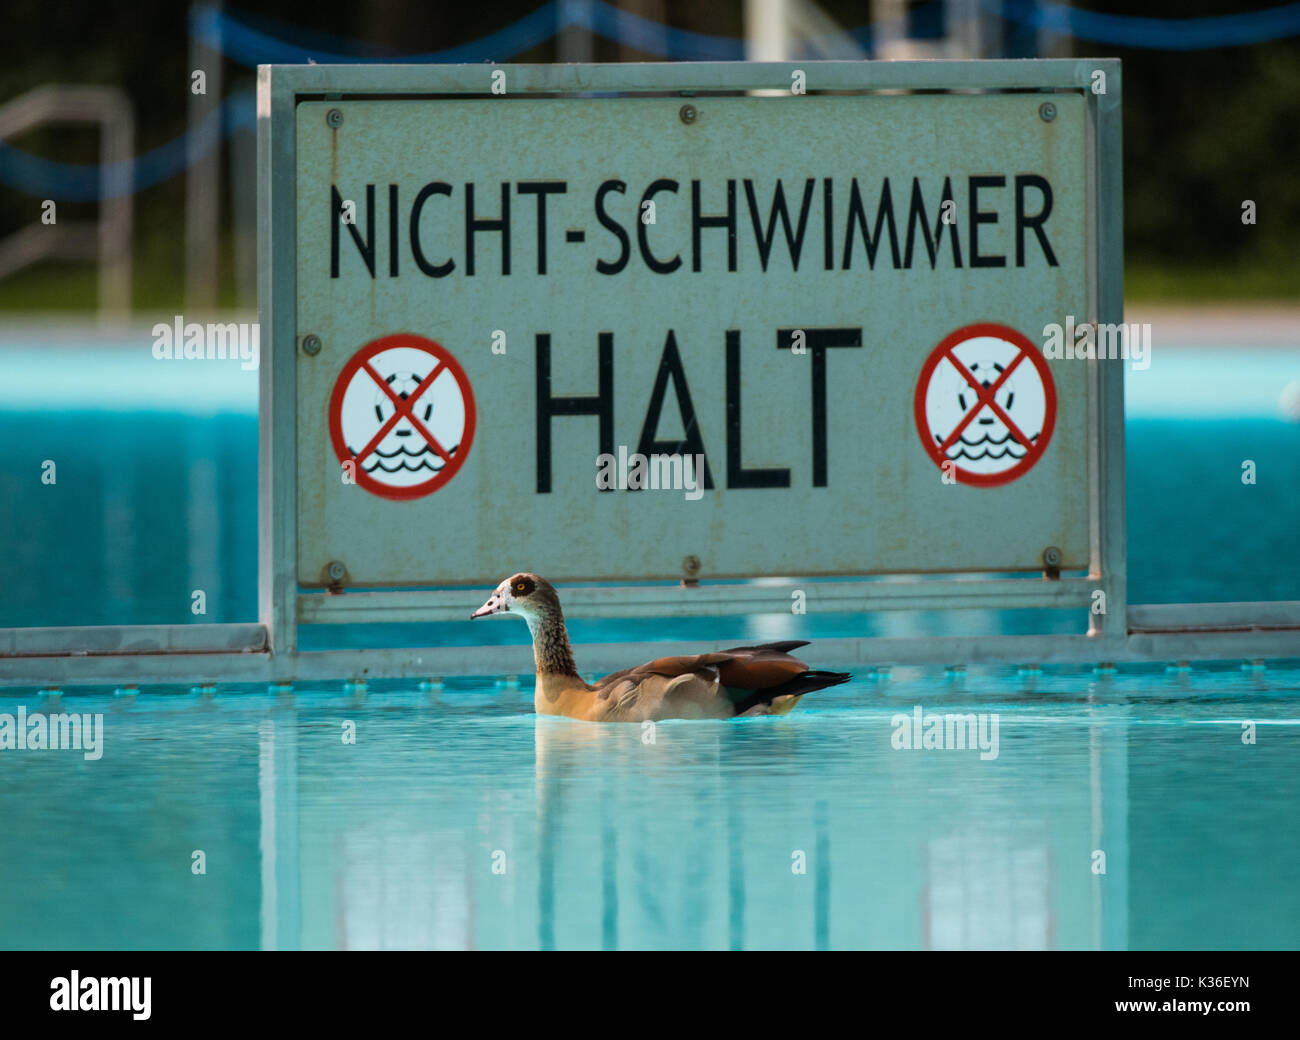 Frankfurt Swimming Pool frankfurt germany 01st sep 2017 an goose is swimming in